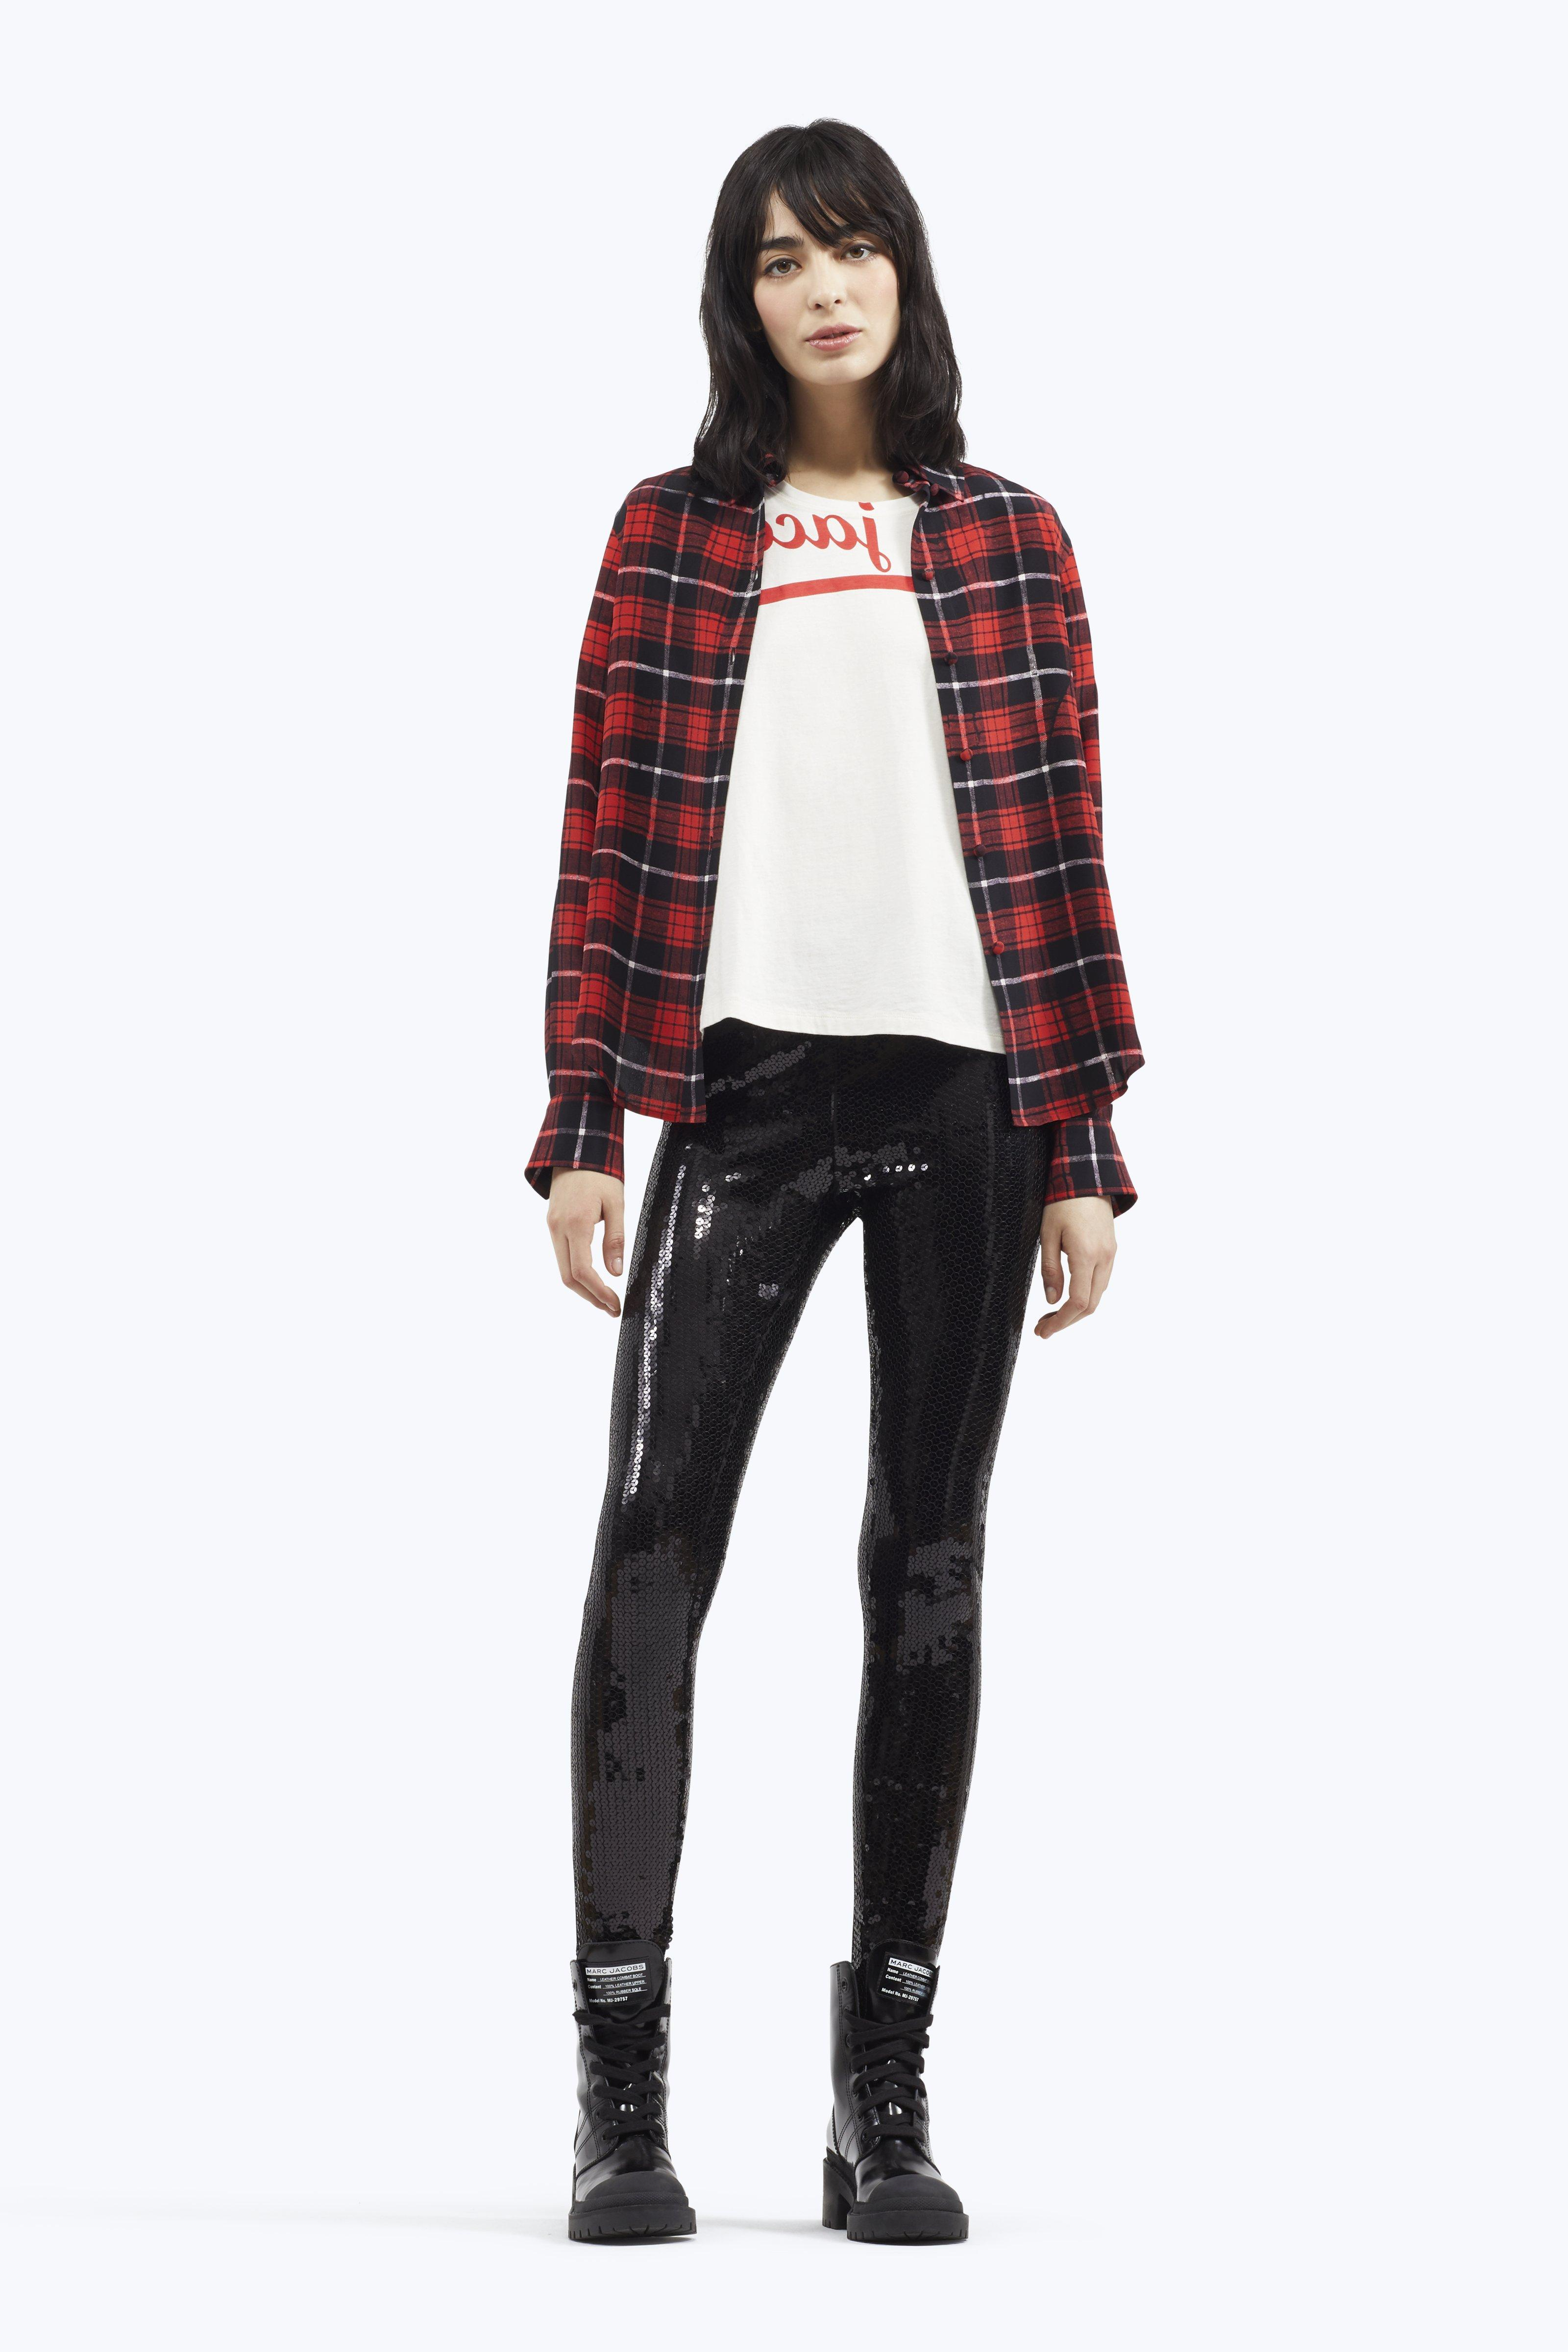 Plaid Silk Crepe De Chine Shirt in Red from MARC JACOBS